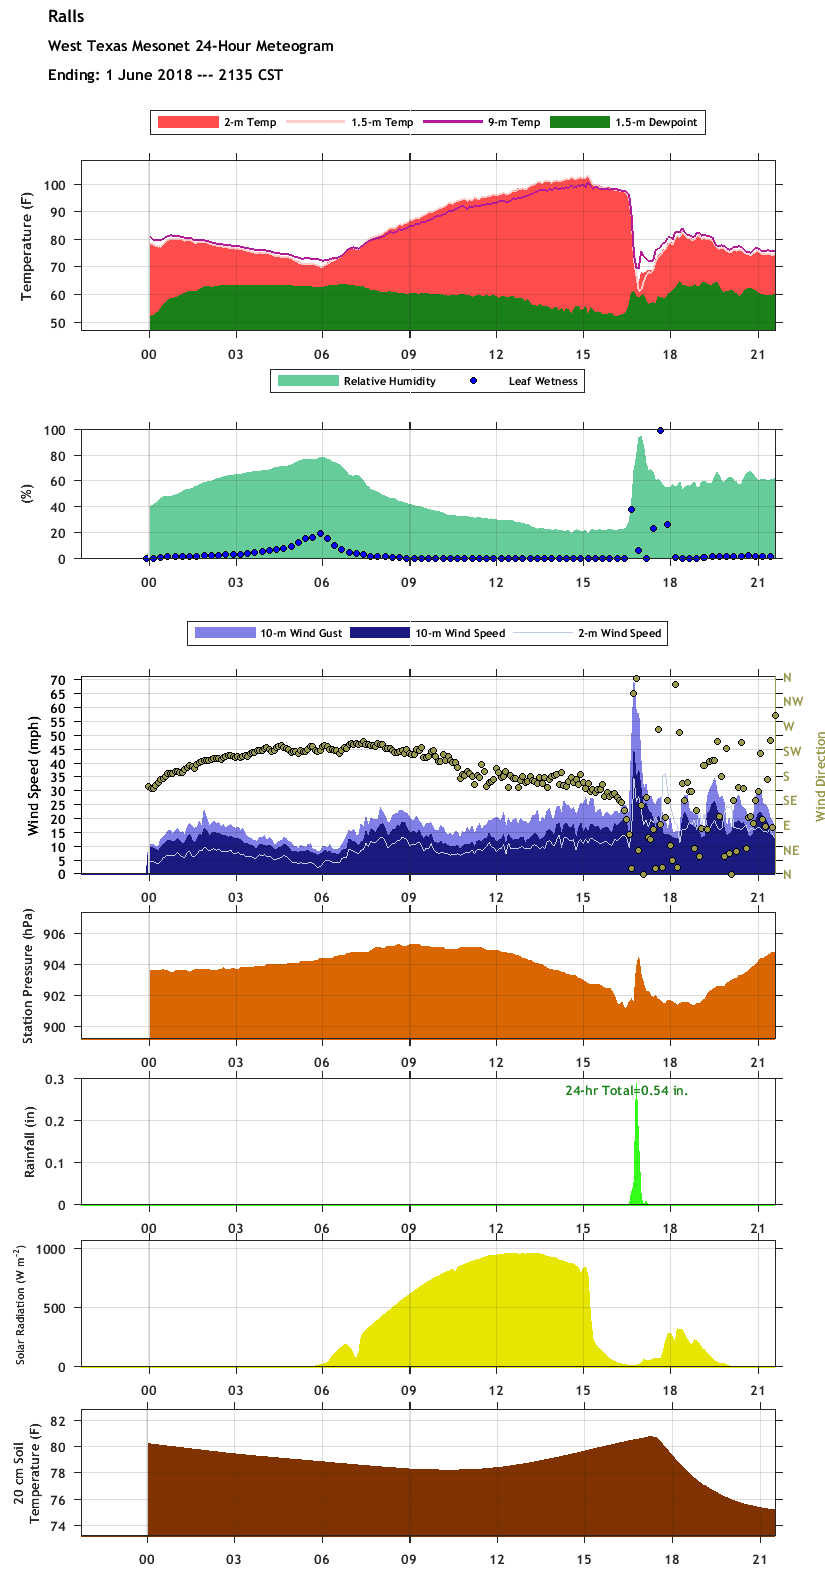 Meteogram from the Ralls West Texas Mesonet site located on the southeast side of town for 1 June 2018.